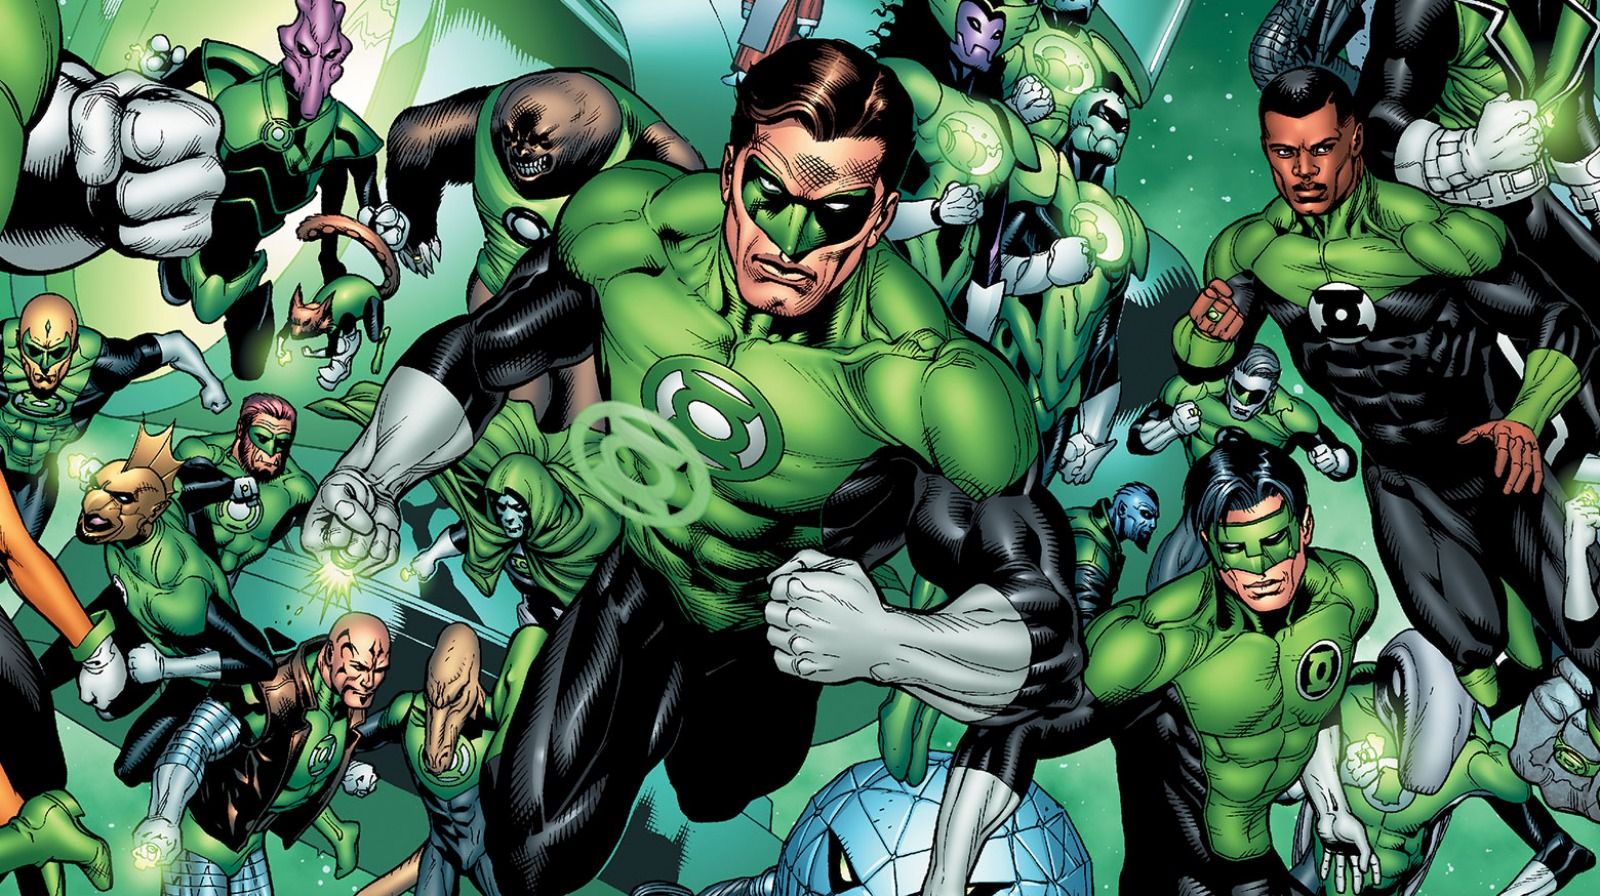 Green Lantern: Lee Toland Krieger tapped to direct first two episodes of HBO Max's upcoming series